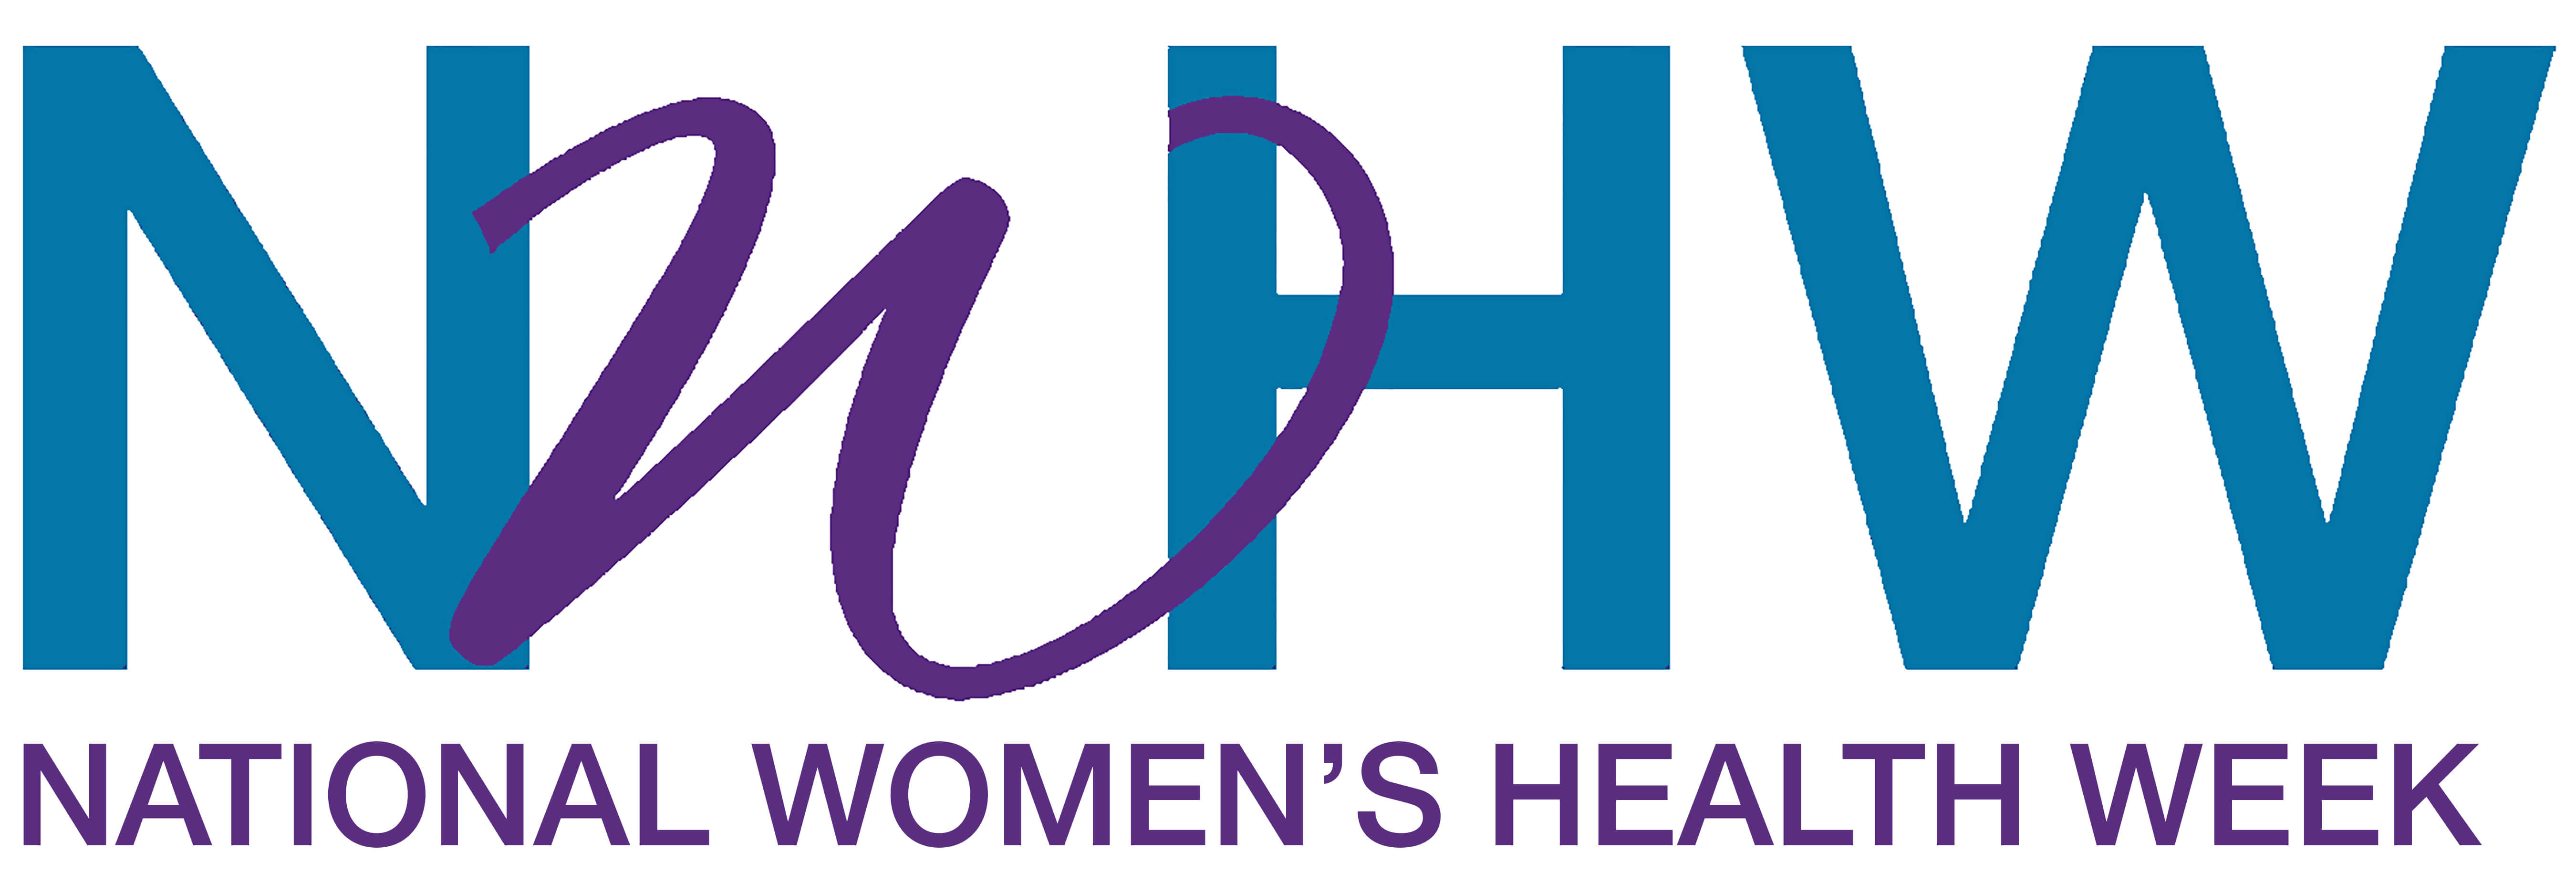 National Women's Health Week Logo